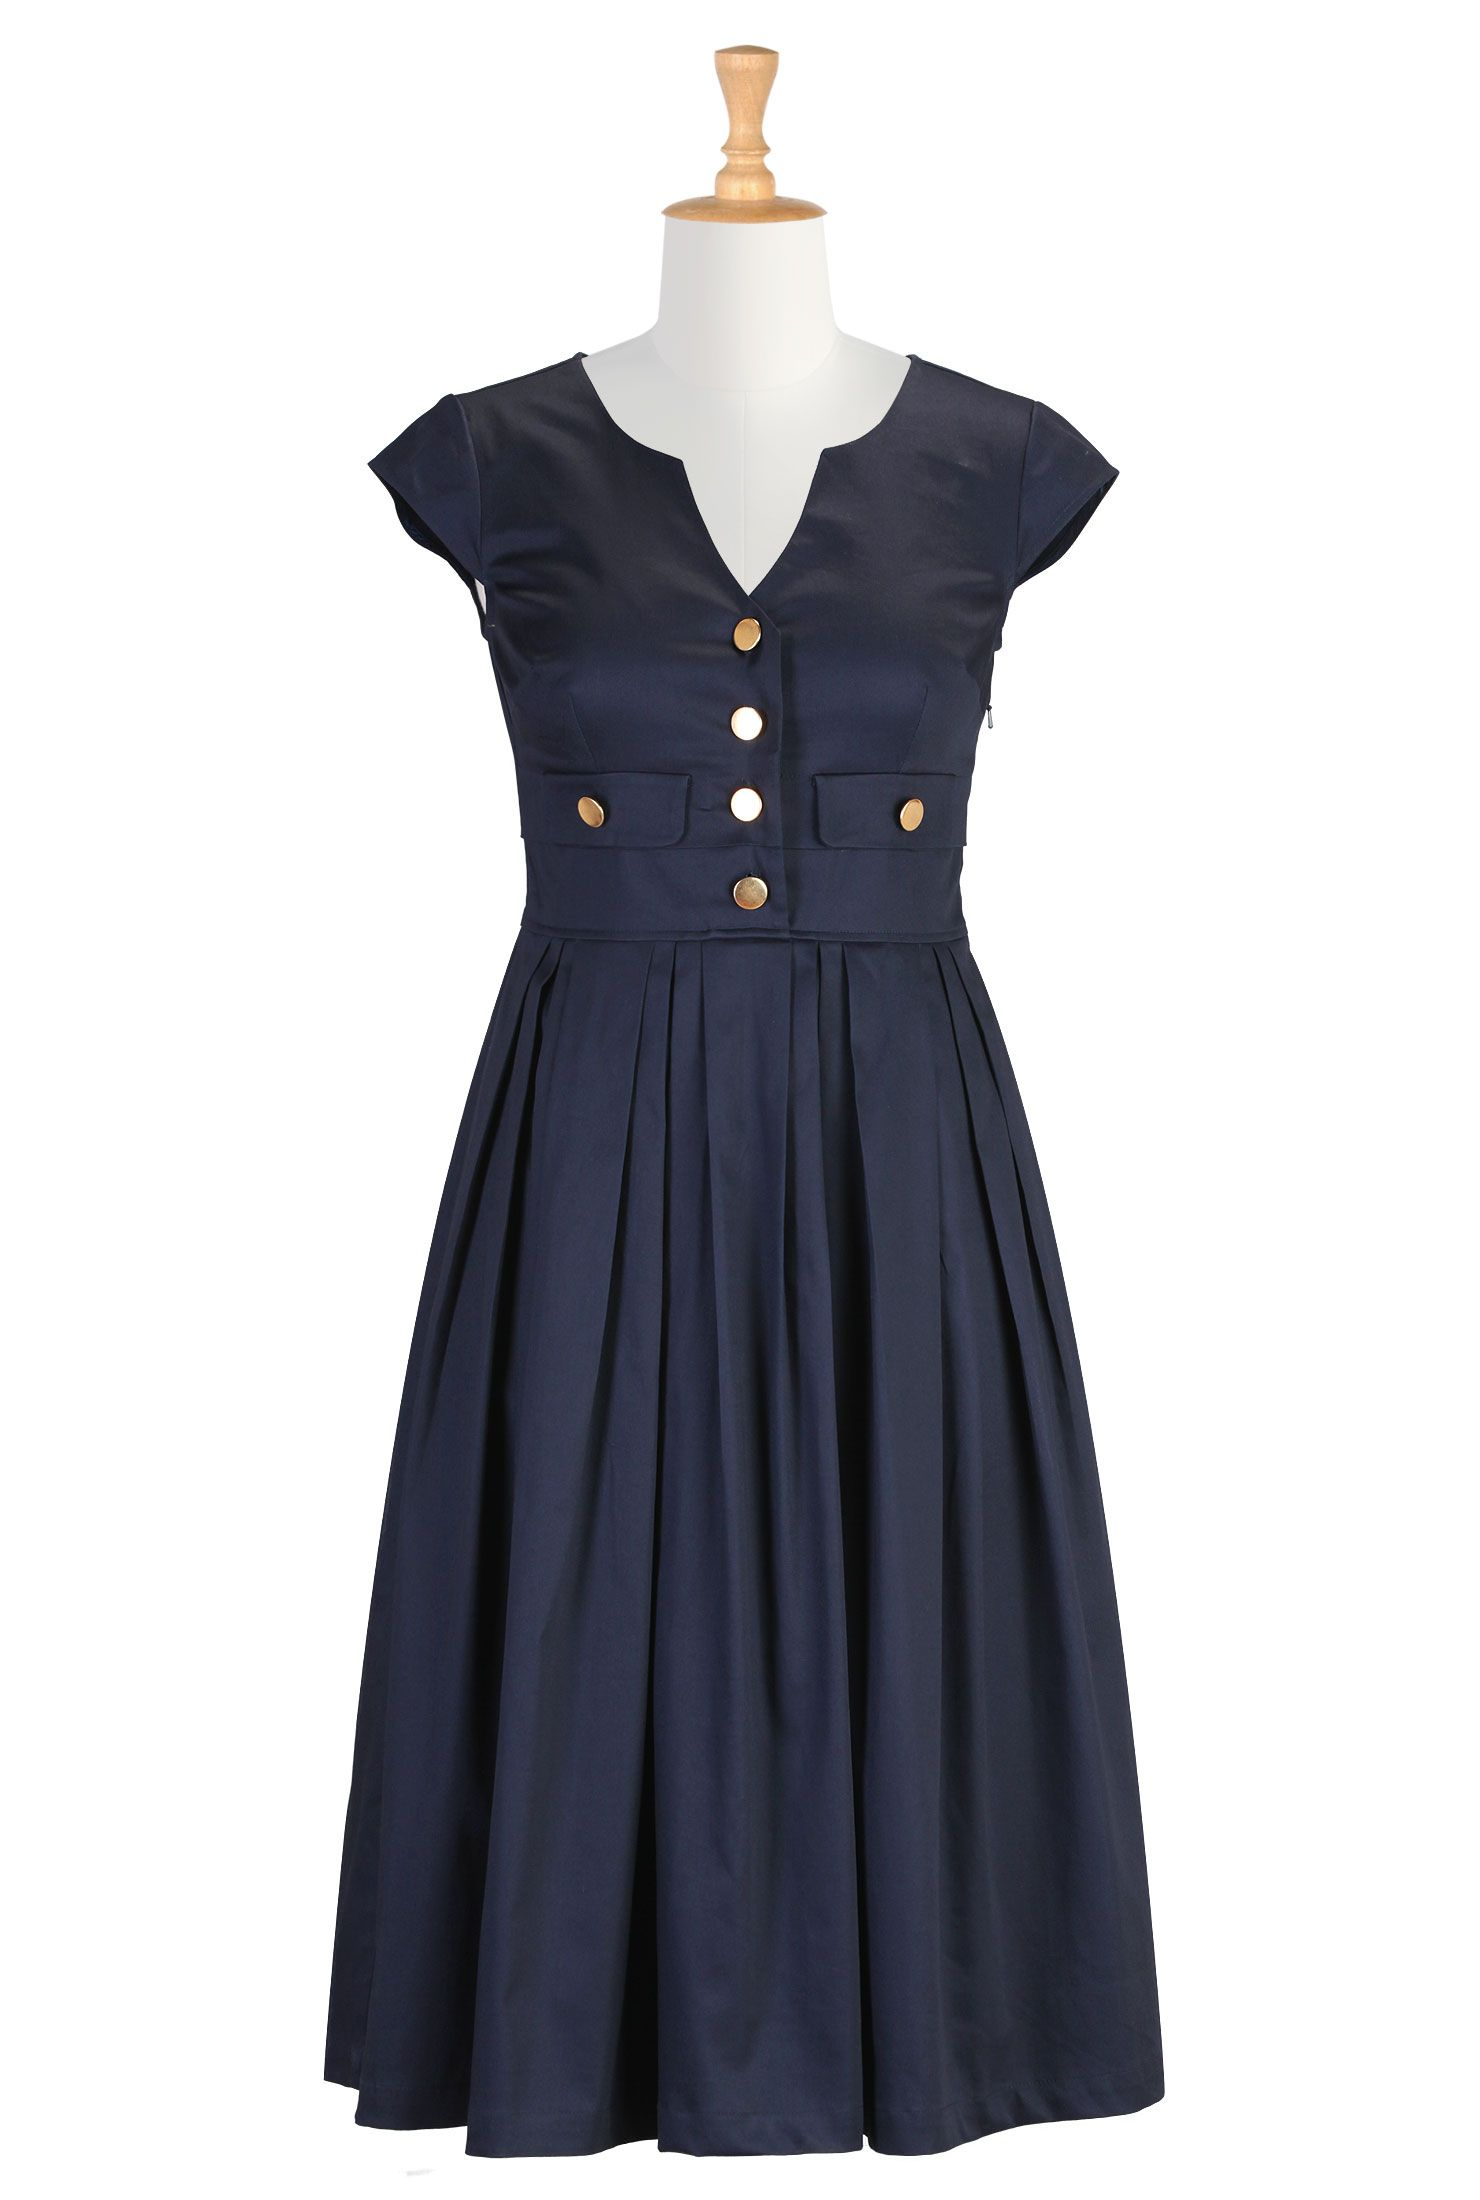 Clothing Plus Size, Classy Dresses For Women All Sizes Special ...